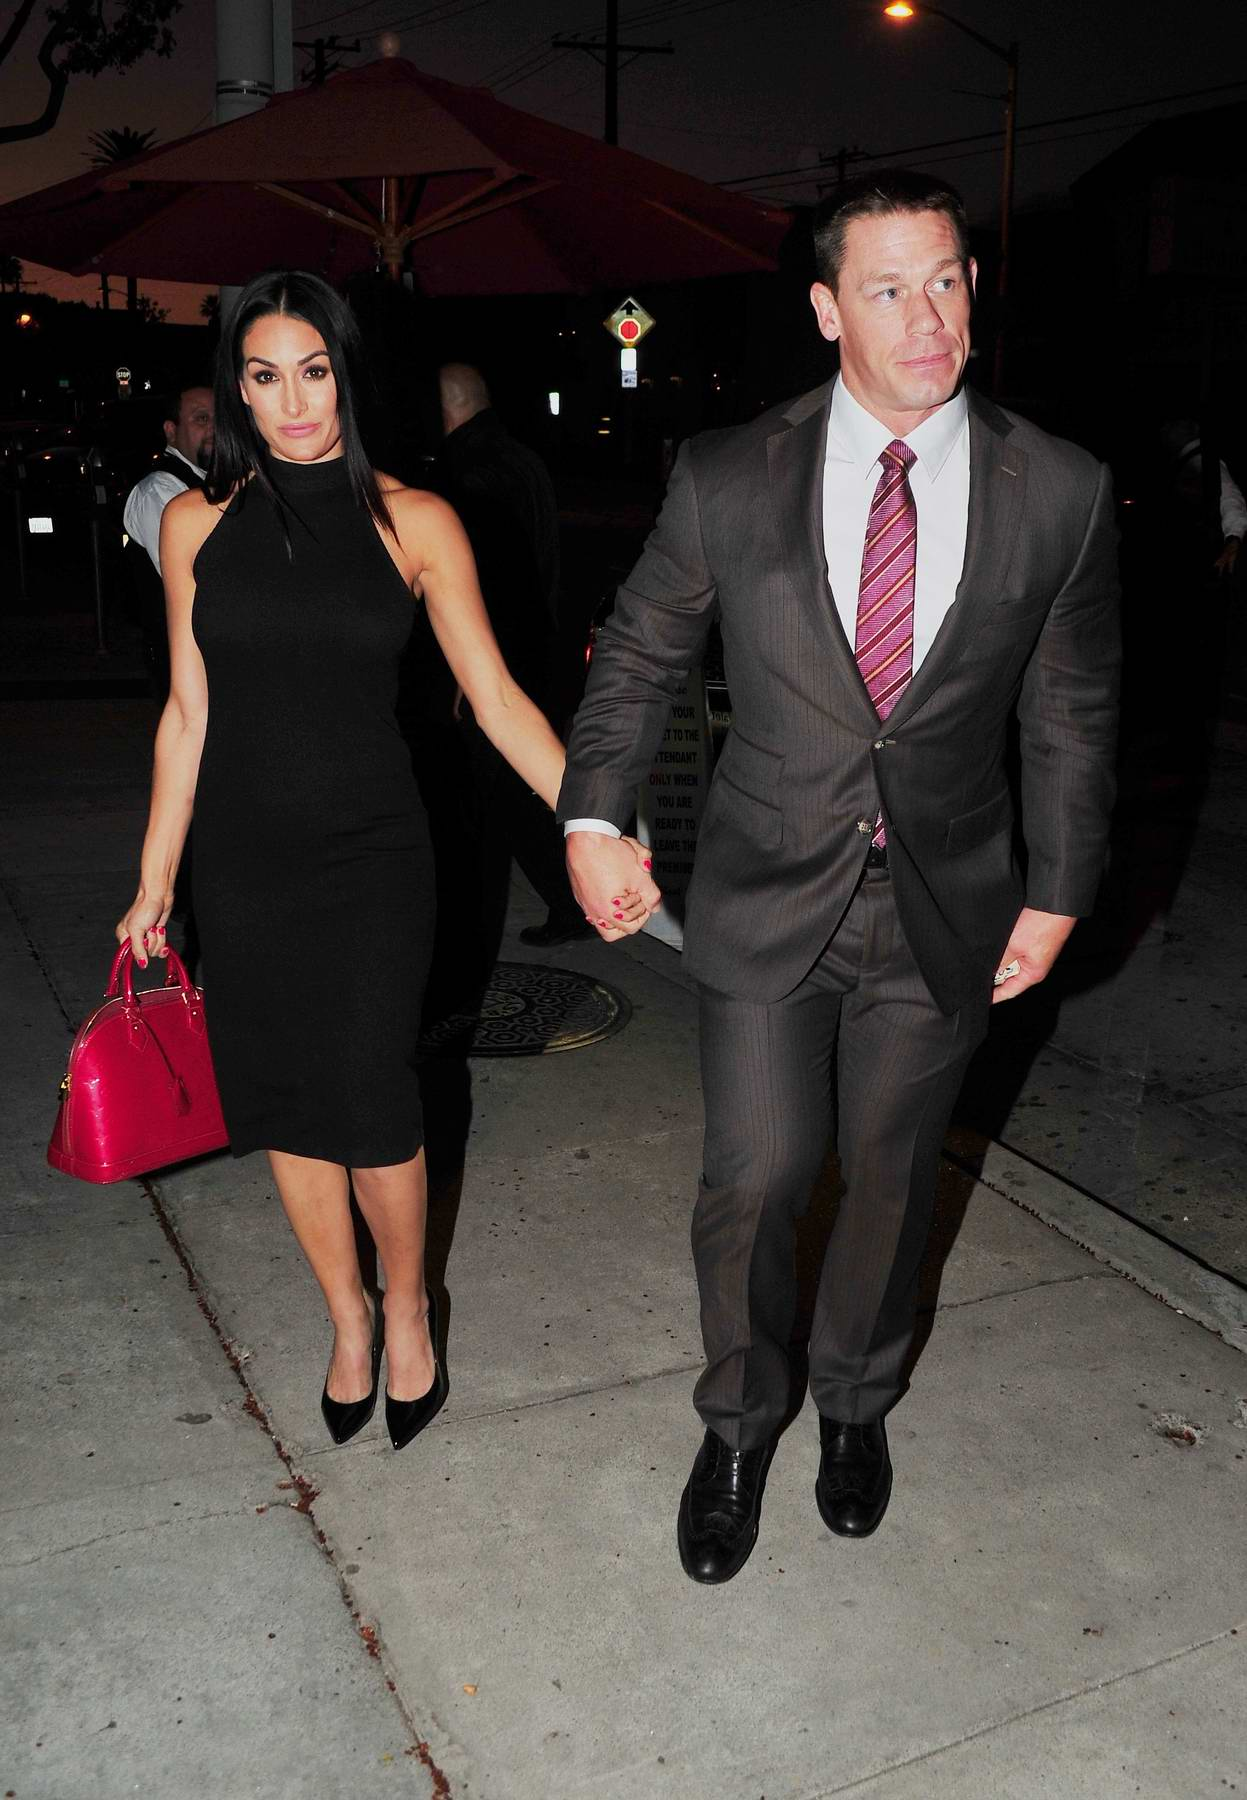 Nikki Bella and John Cena leaving after enjoying dinner at Craig's in West Hollywood, Los Angeles